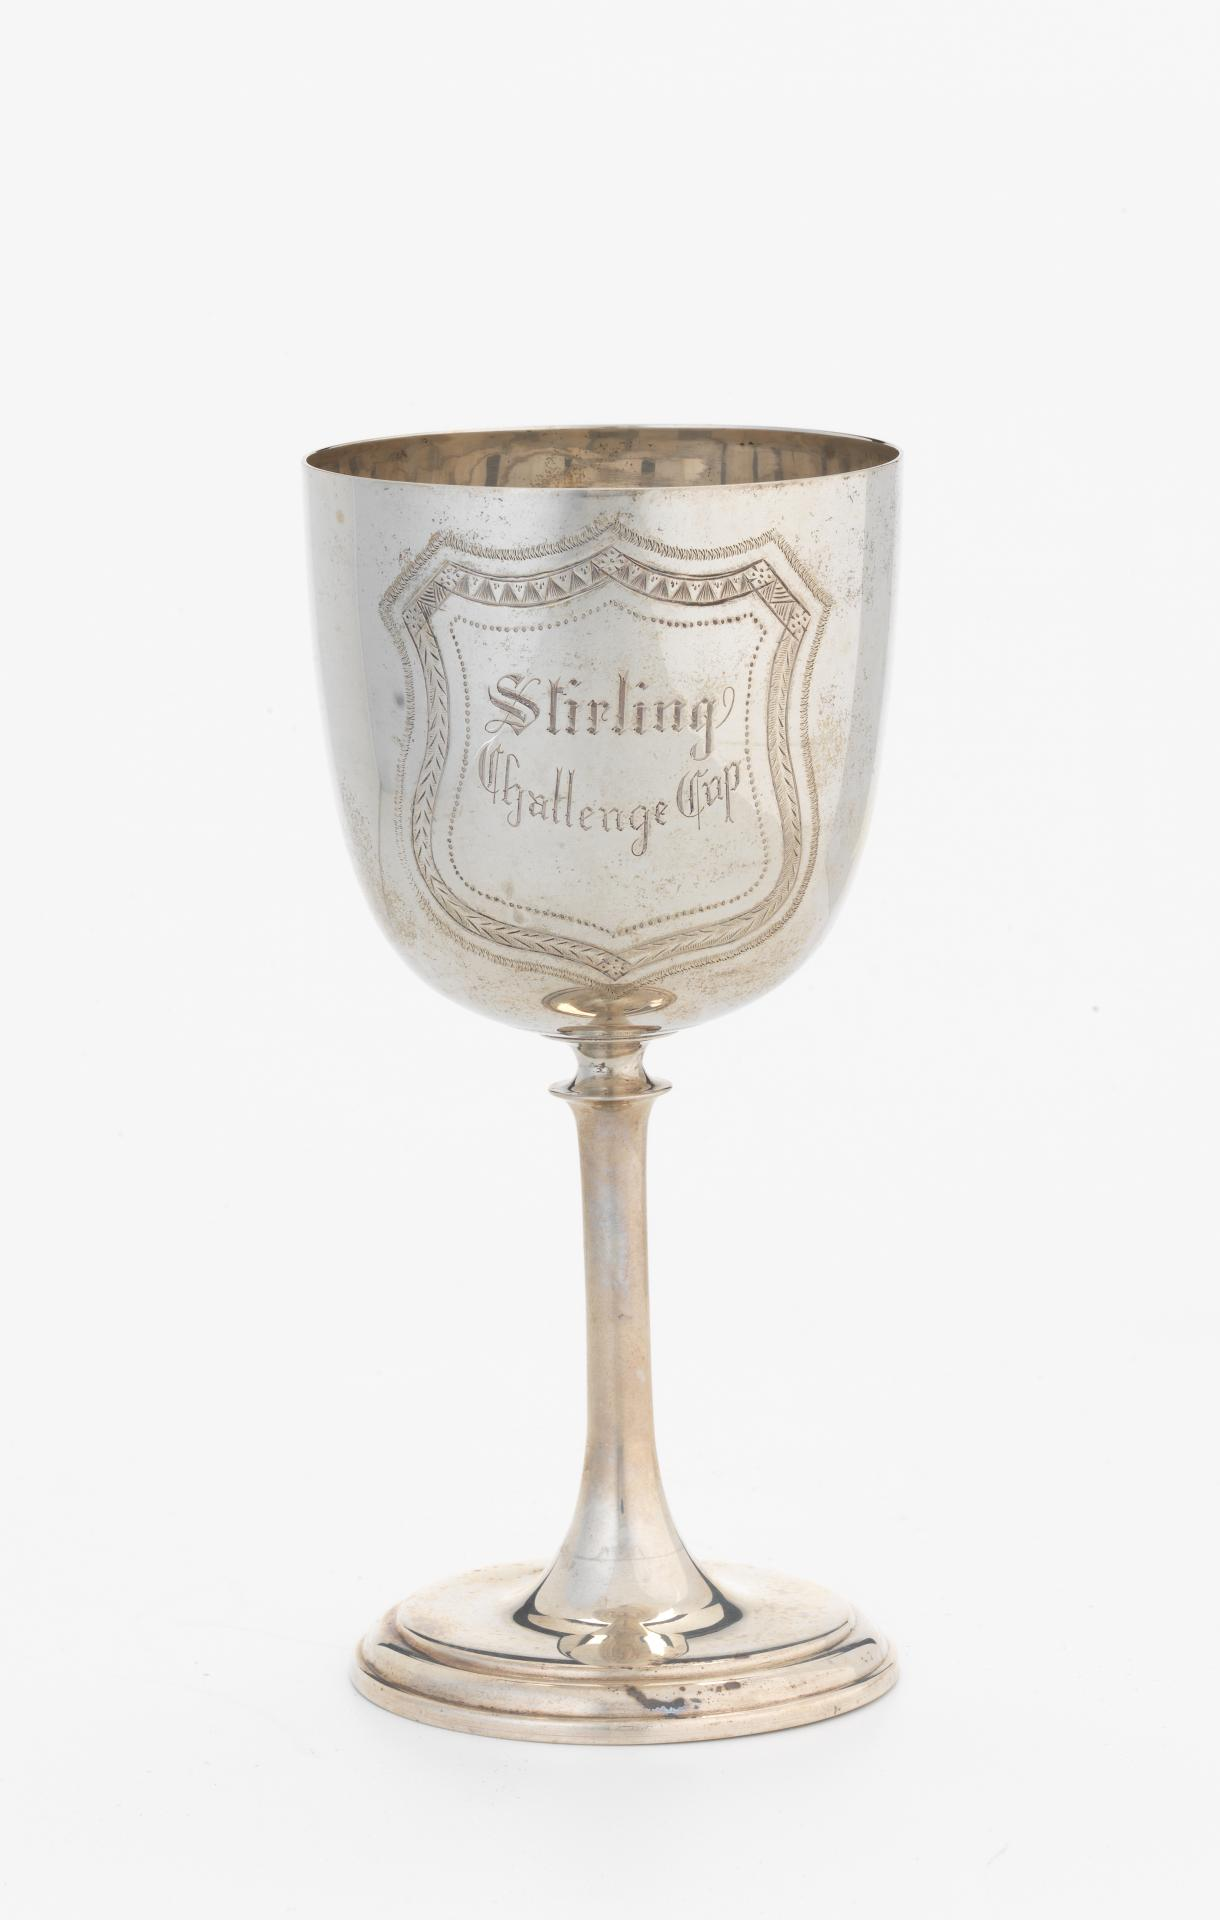 Stirling Challenge Cup